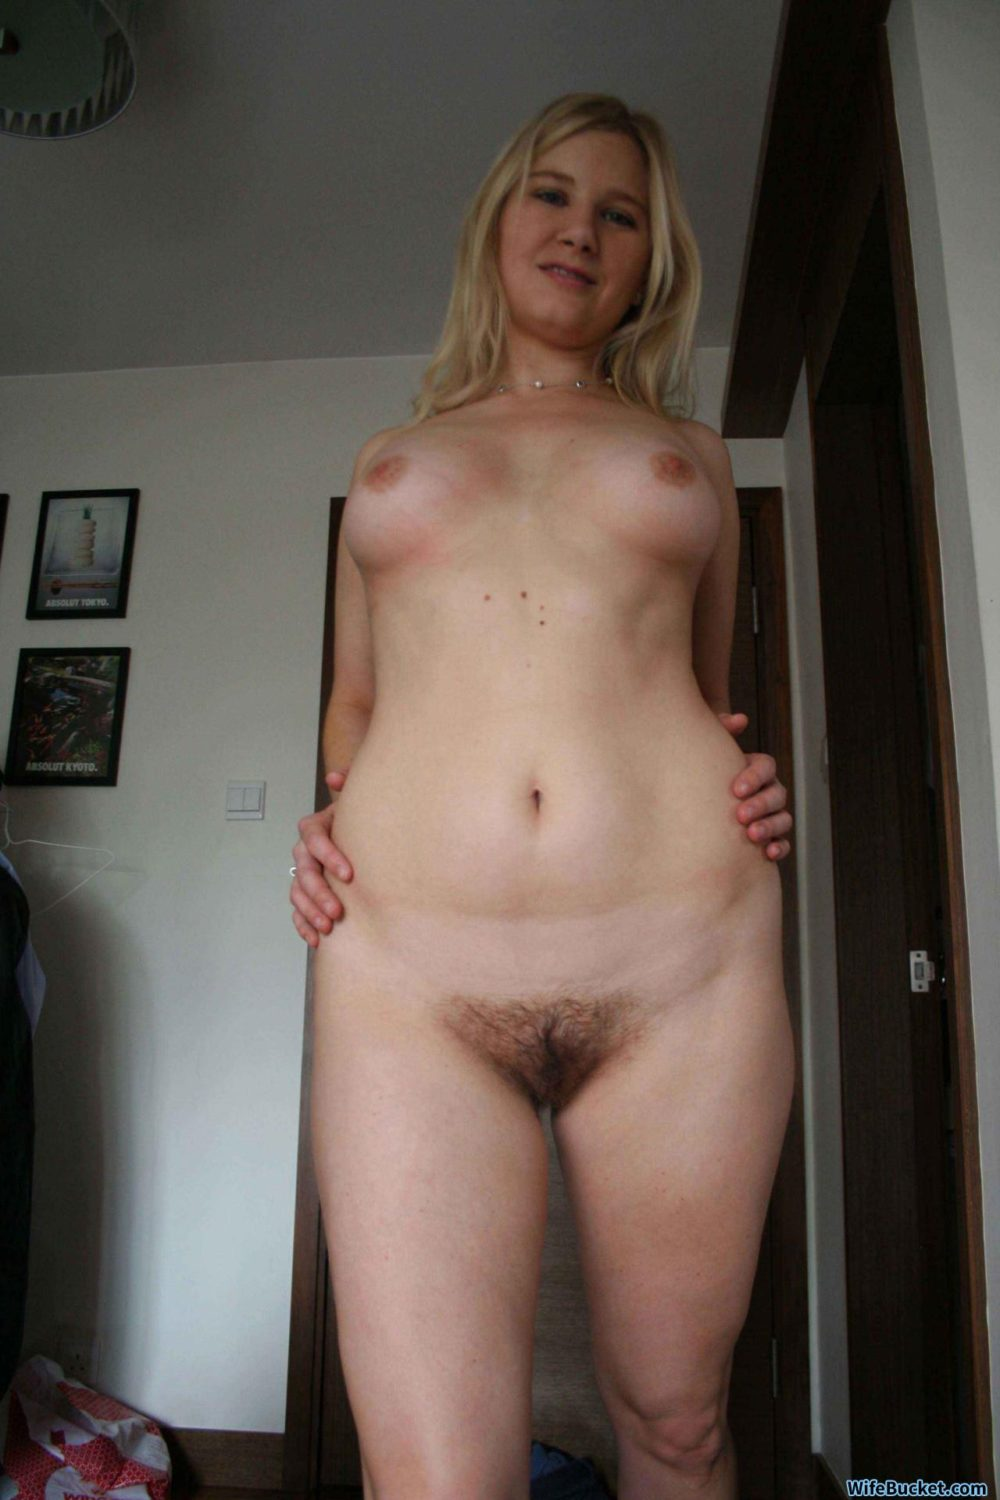 Nude selfies of mature women